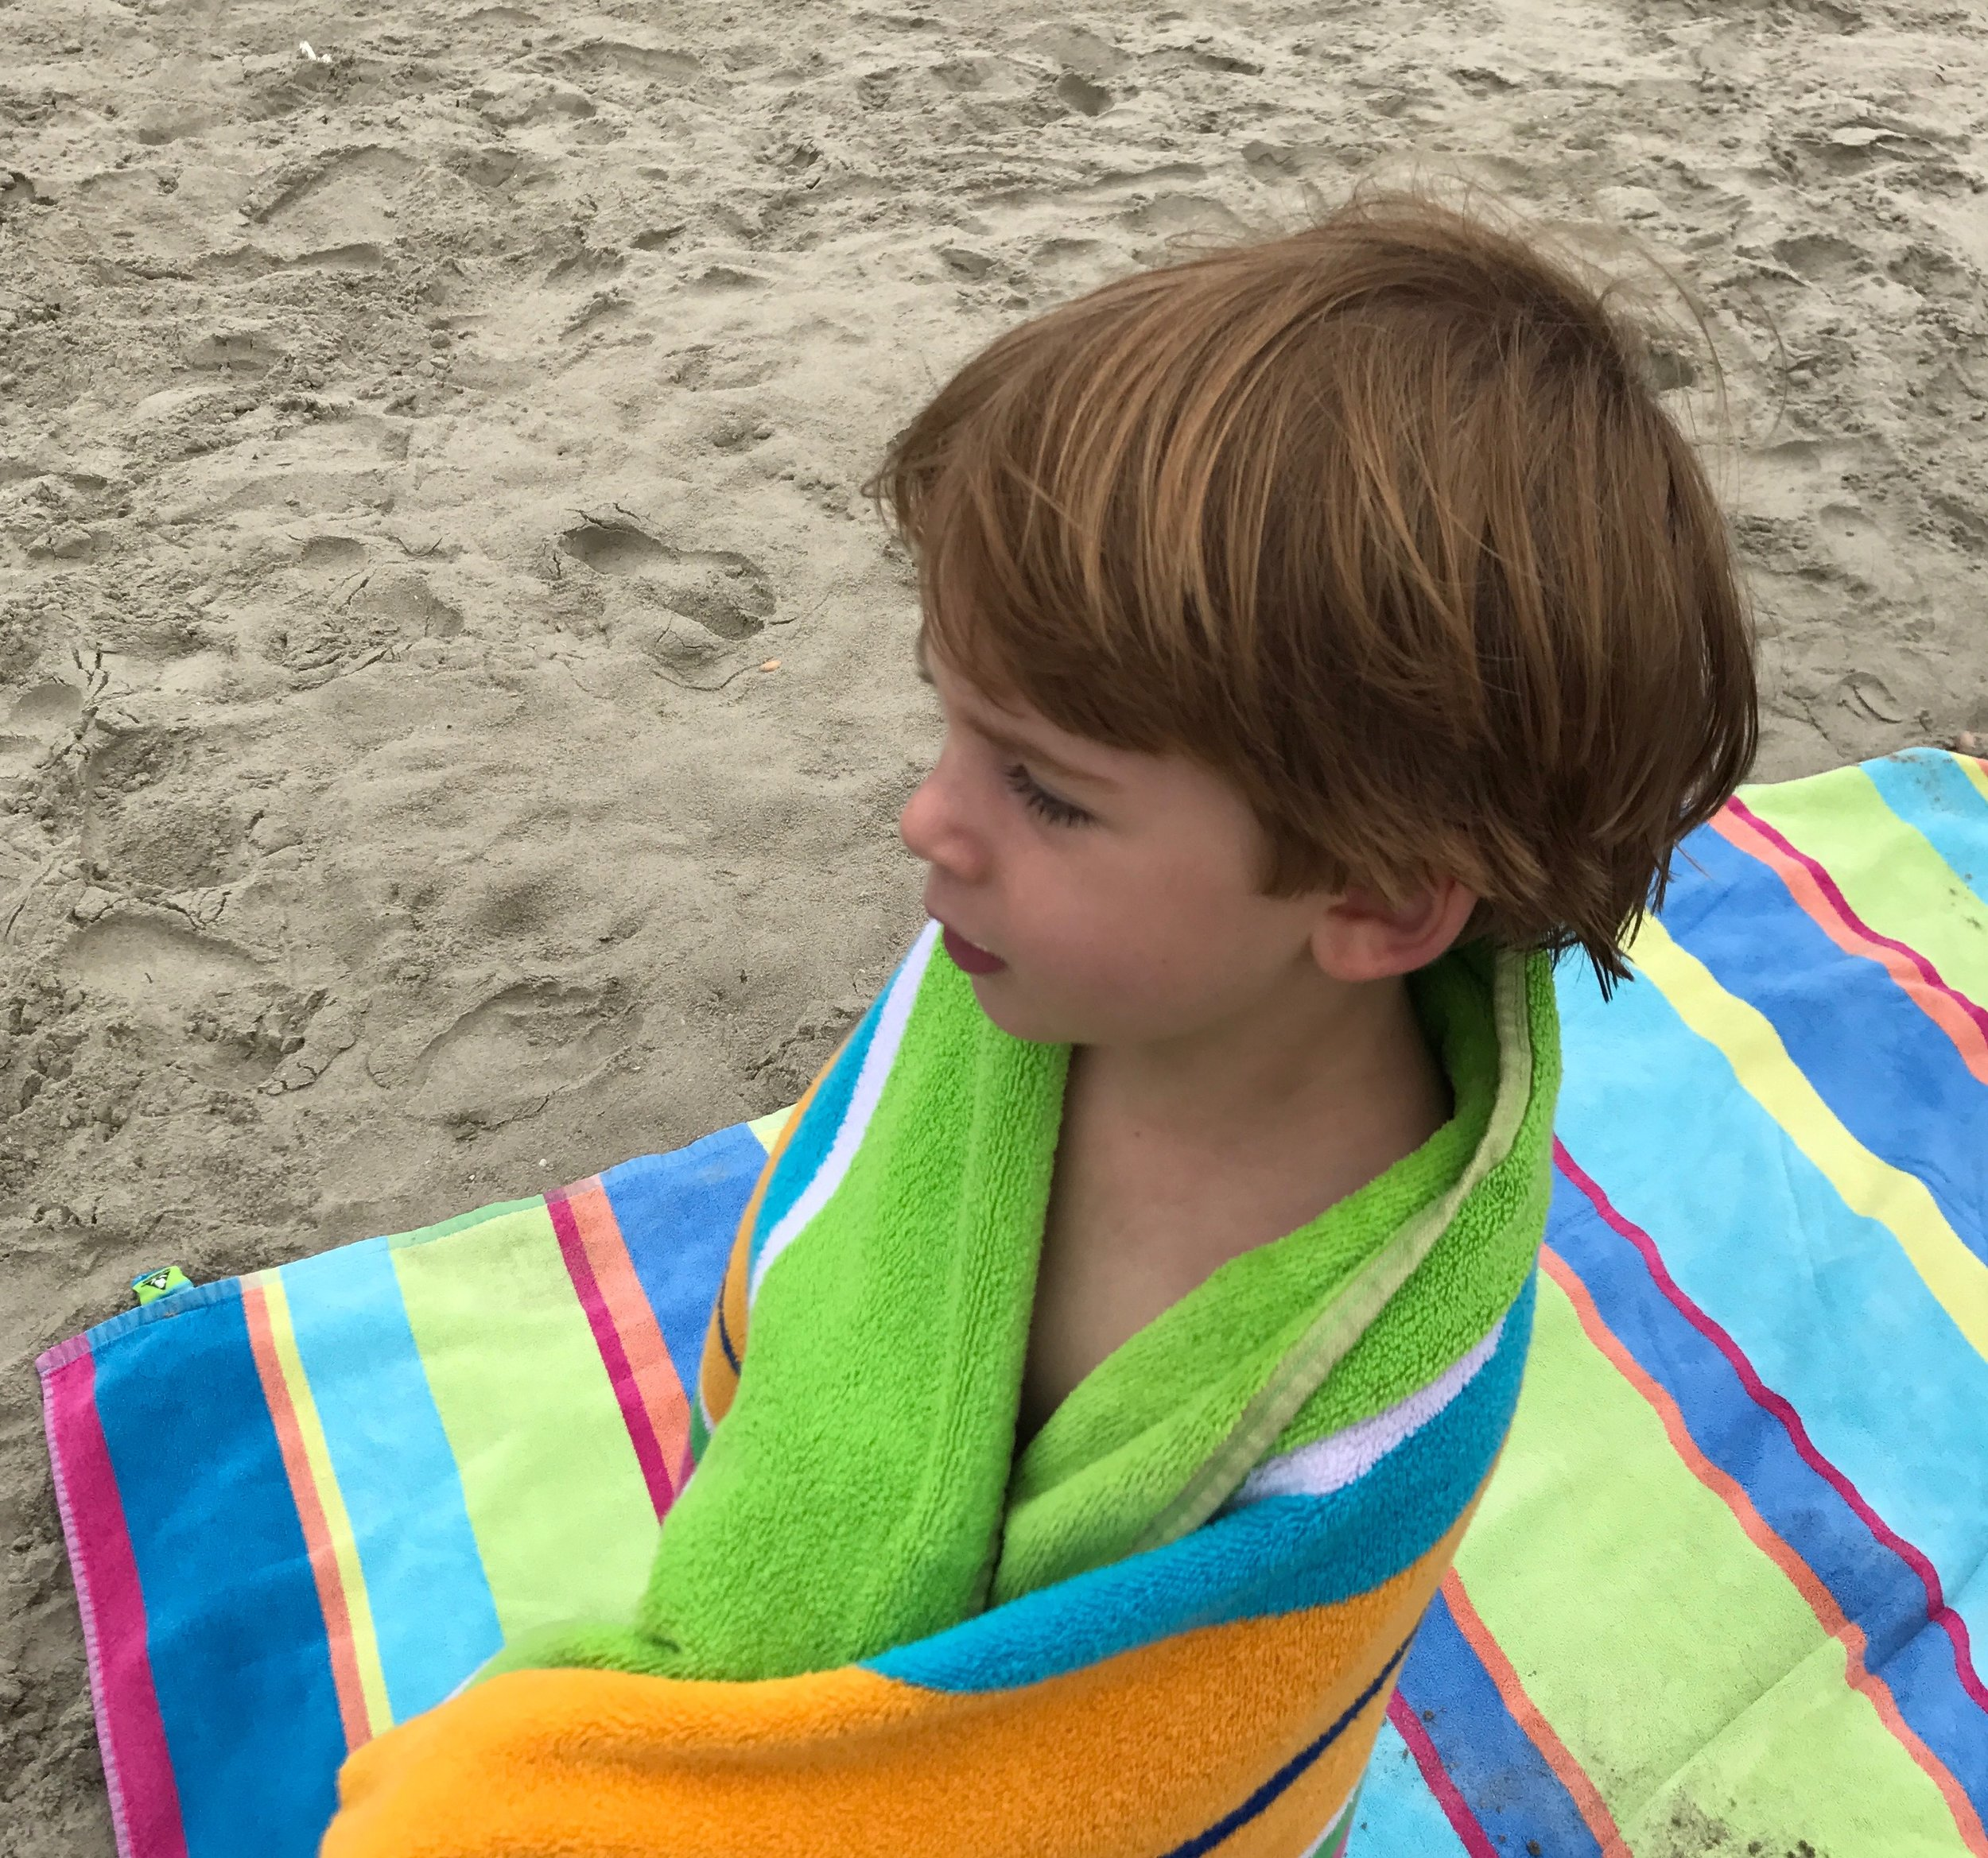 The kids took turns bundling in towels during breaks. This is Lloyd and Jennie's oldest, Harris.